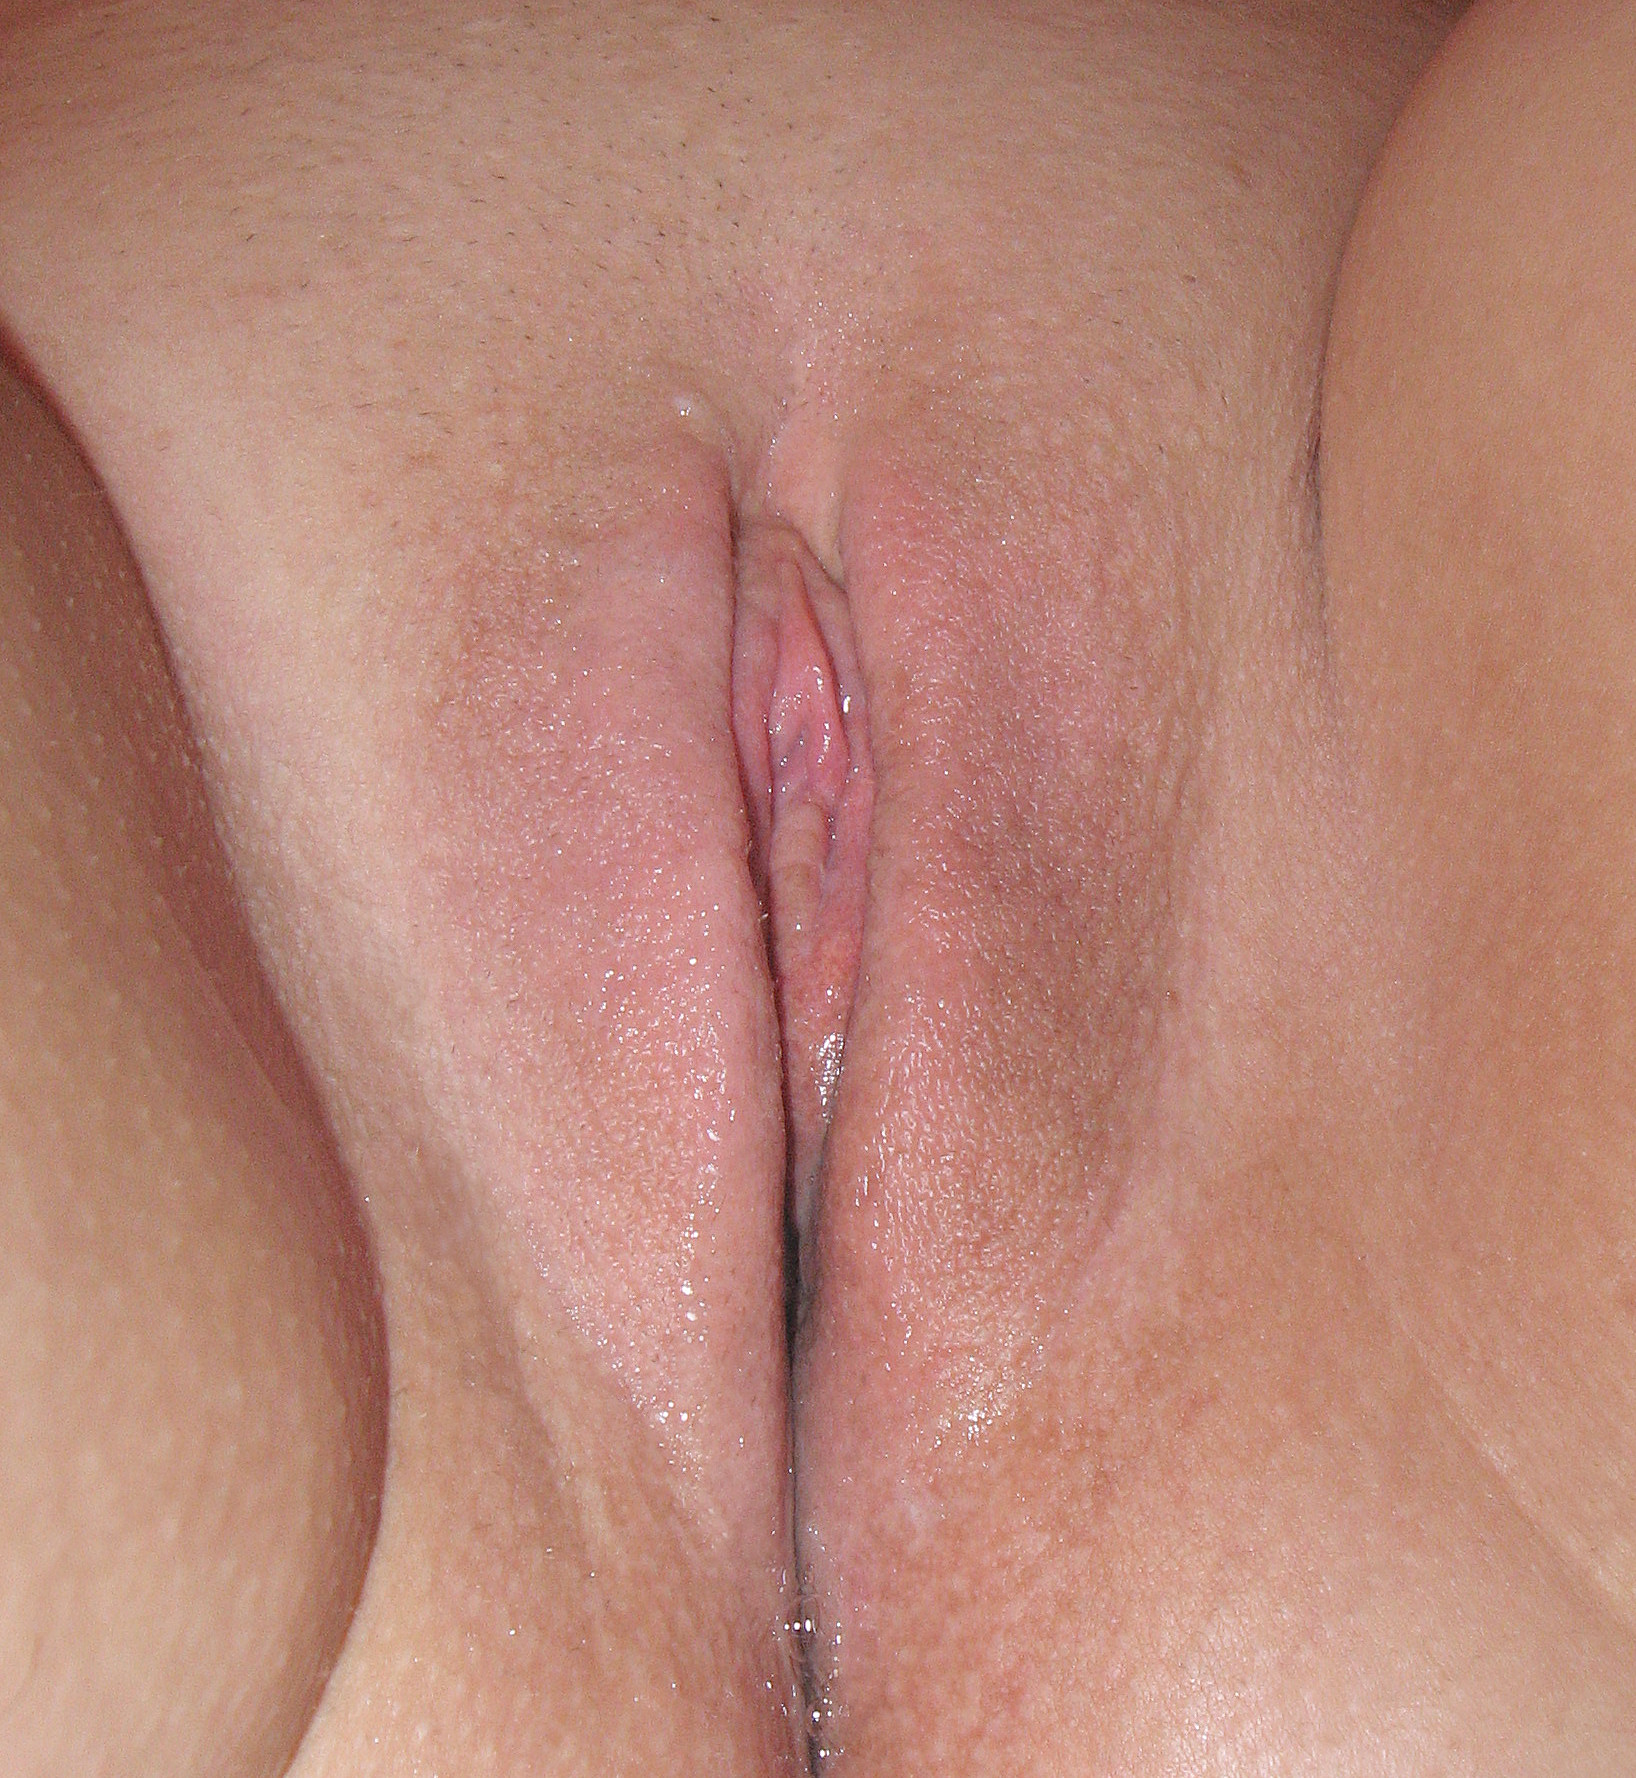 vulva photo female pubic examine